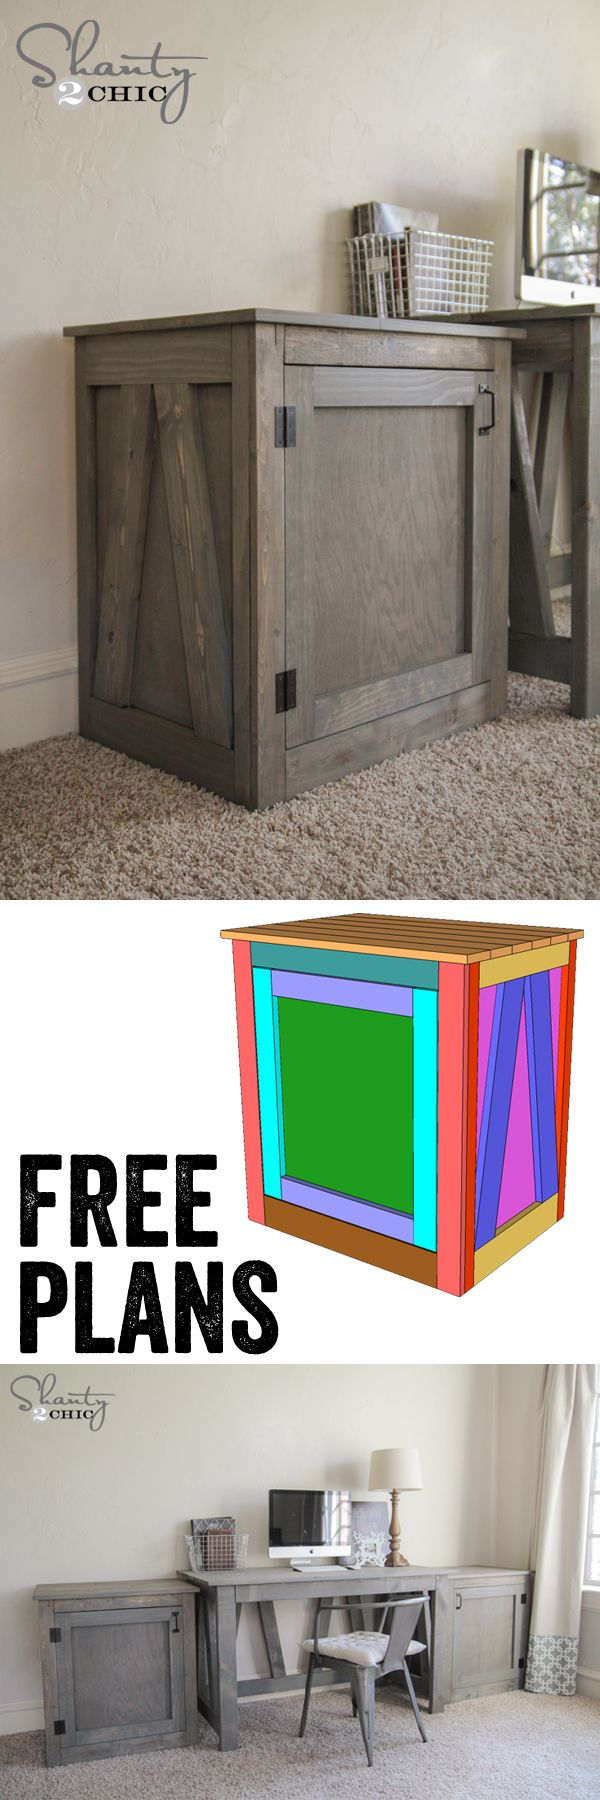 Free Woodworking Plans - DIY Desk Table and Nightstand - Great hidden storage! www.shanty-2-chic.com